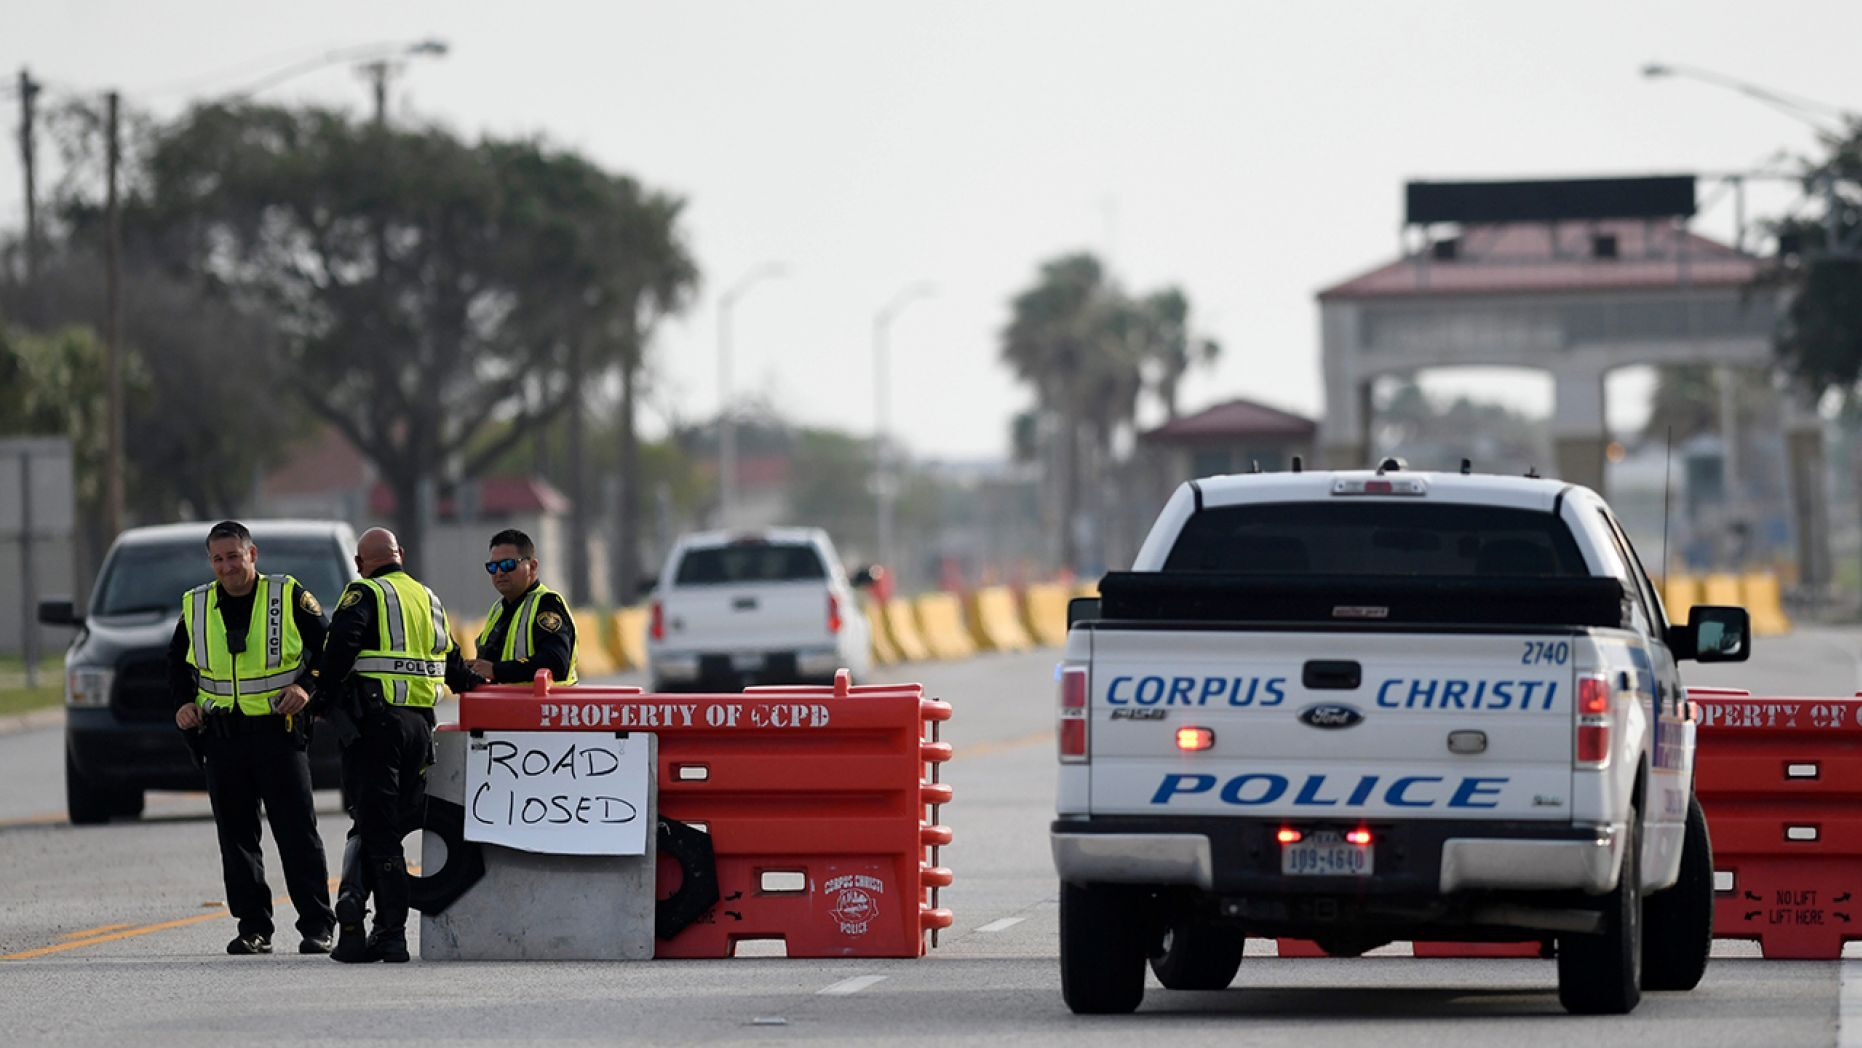 Westlake Legal Group corp 'Terror-related' shooting at NAS Corpus Christi prompts search for possible 2nd suspect fox-news/world/terrorism fox-news/us/us-regions/southwest/texas fox-news/us/terror fox-news/us/military/navy fox-news/us/military fox-news/us/crime/manhunt fox-news/us/crime fox-news/tech/topics/fbi fox news fnc/us fnc Dom Calicchio article 783e92d9-adbe-50ca-9644-48000d089987